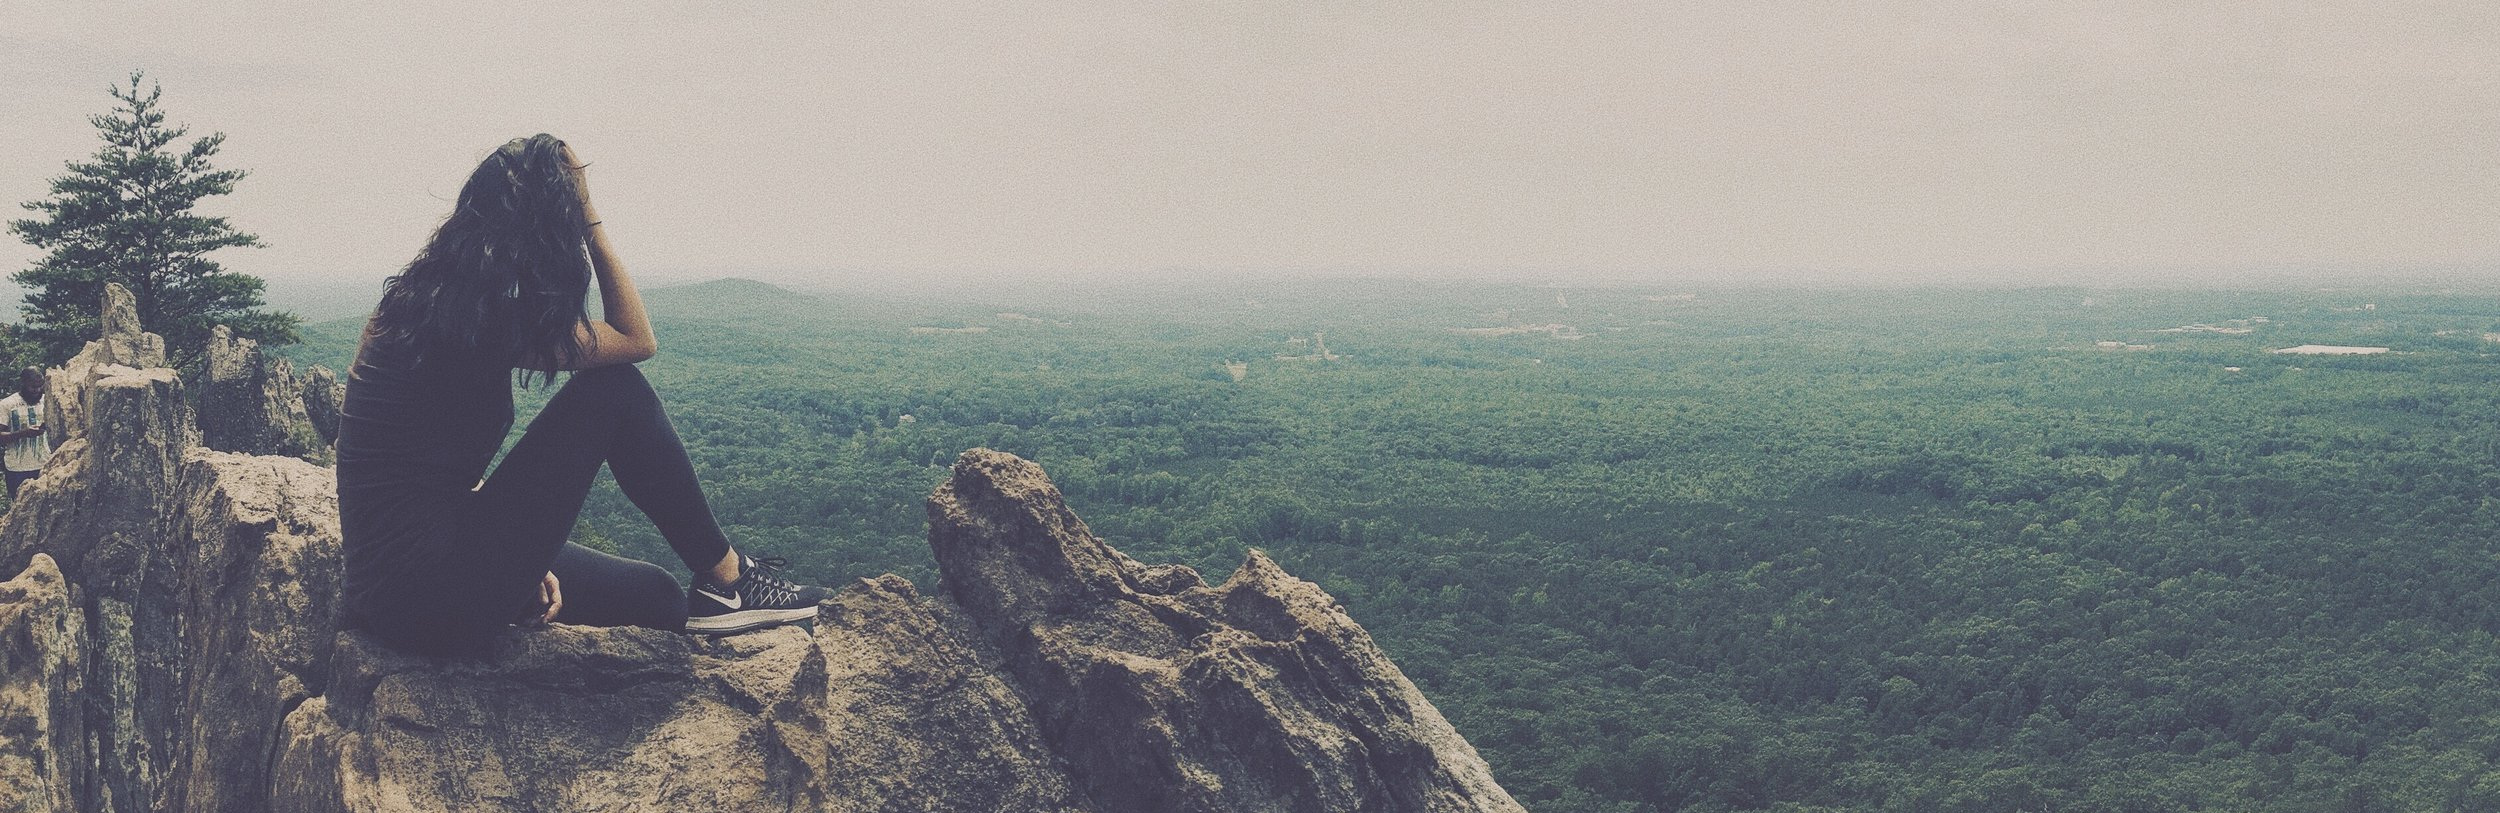 The view from the top of King's Pinnacle at Crowders Mountain State Park.